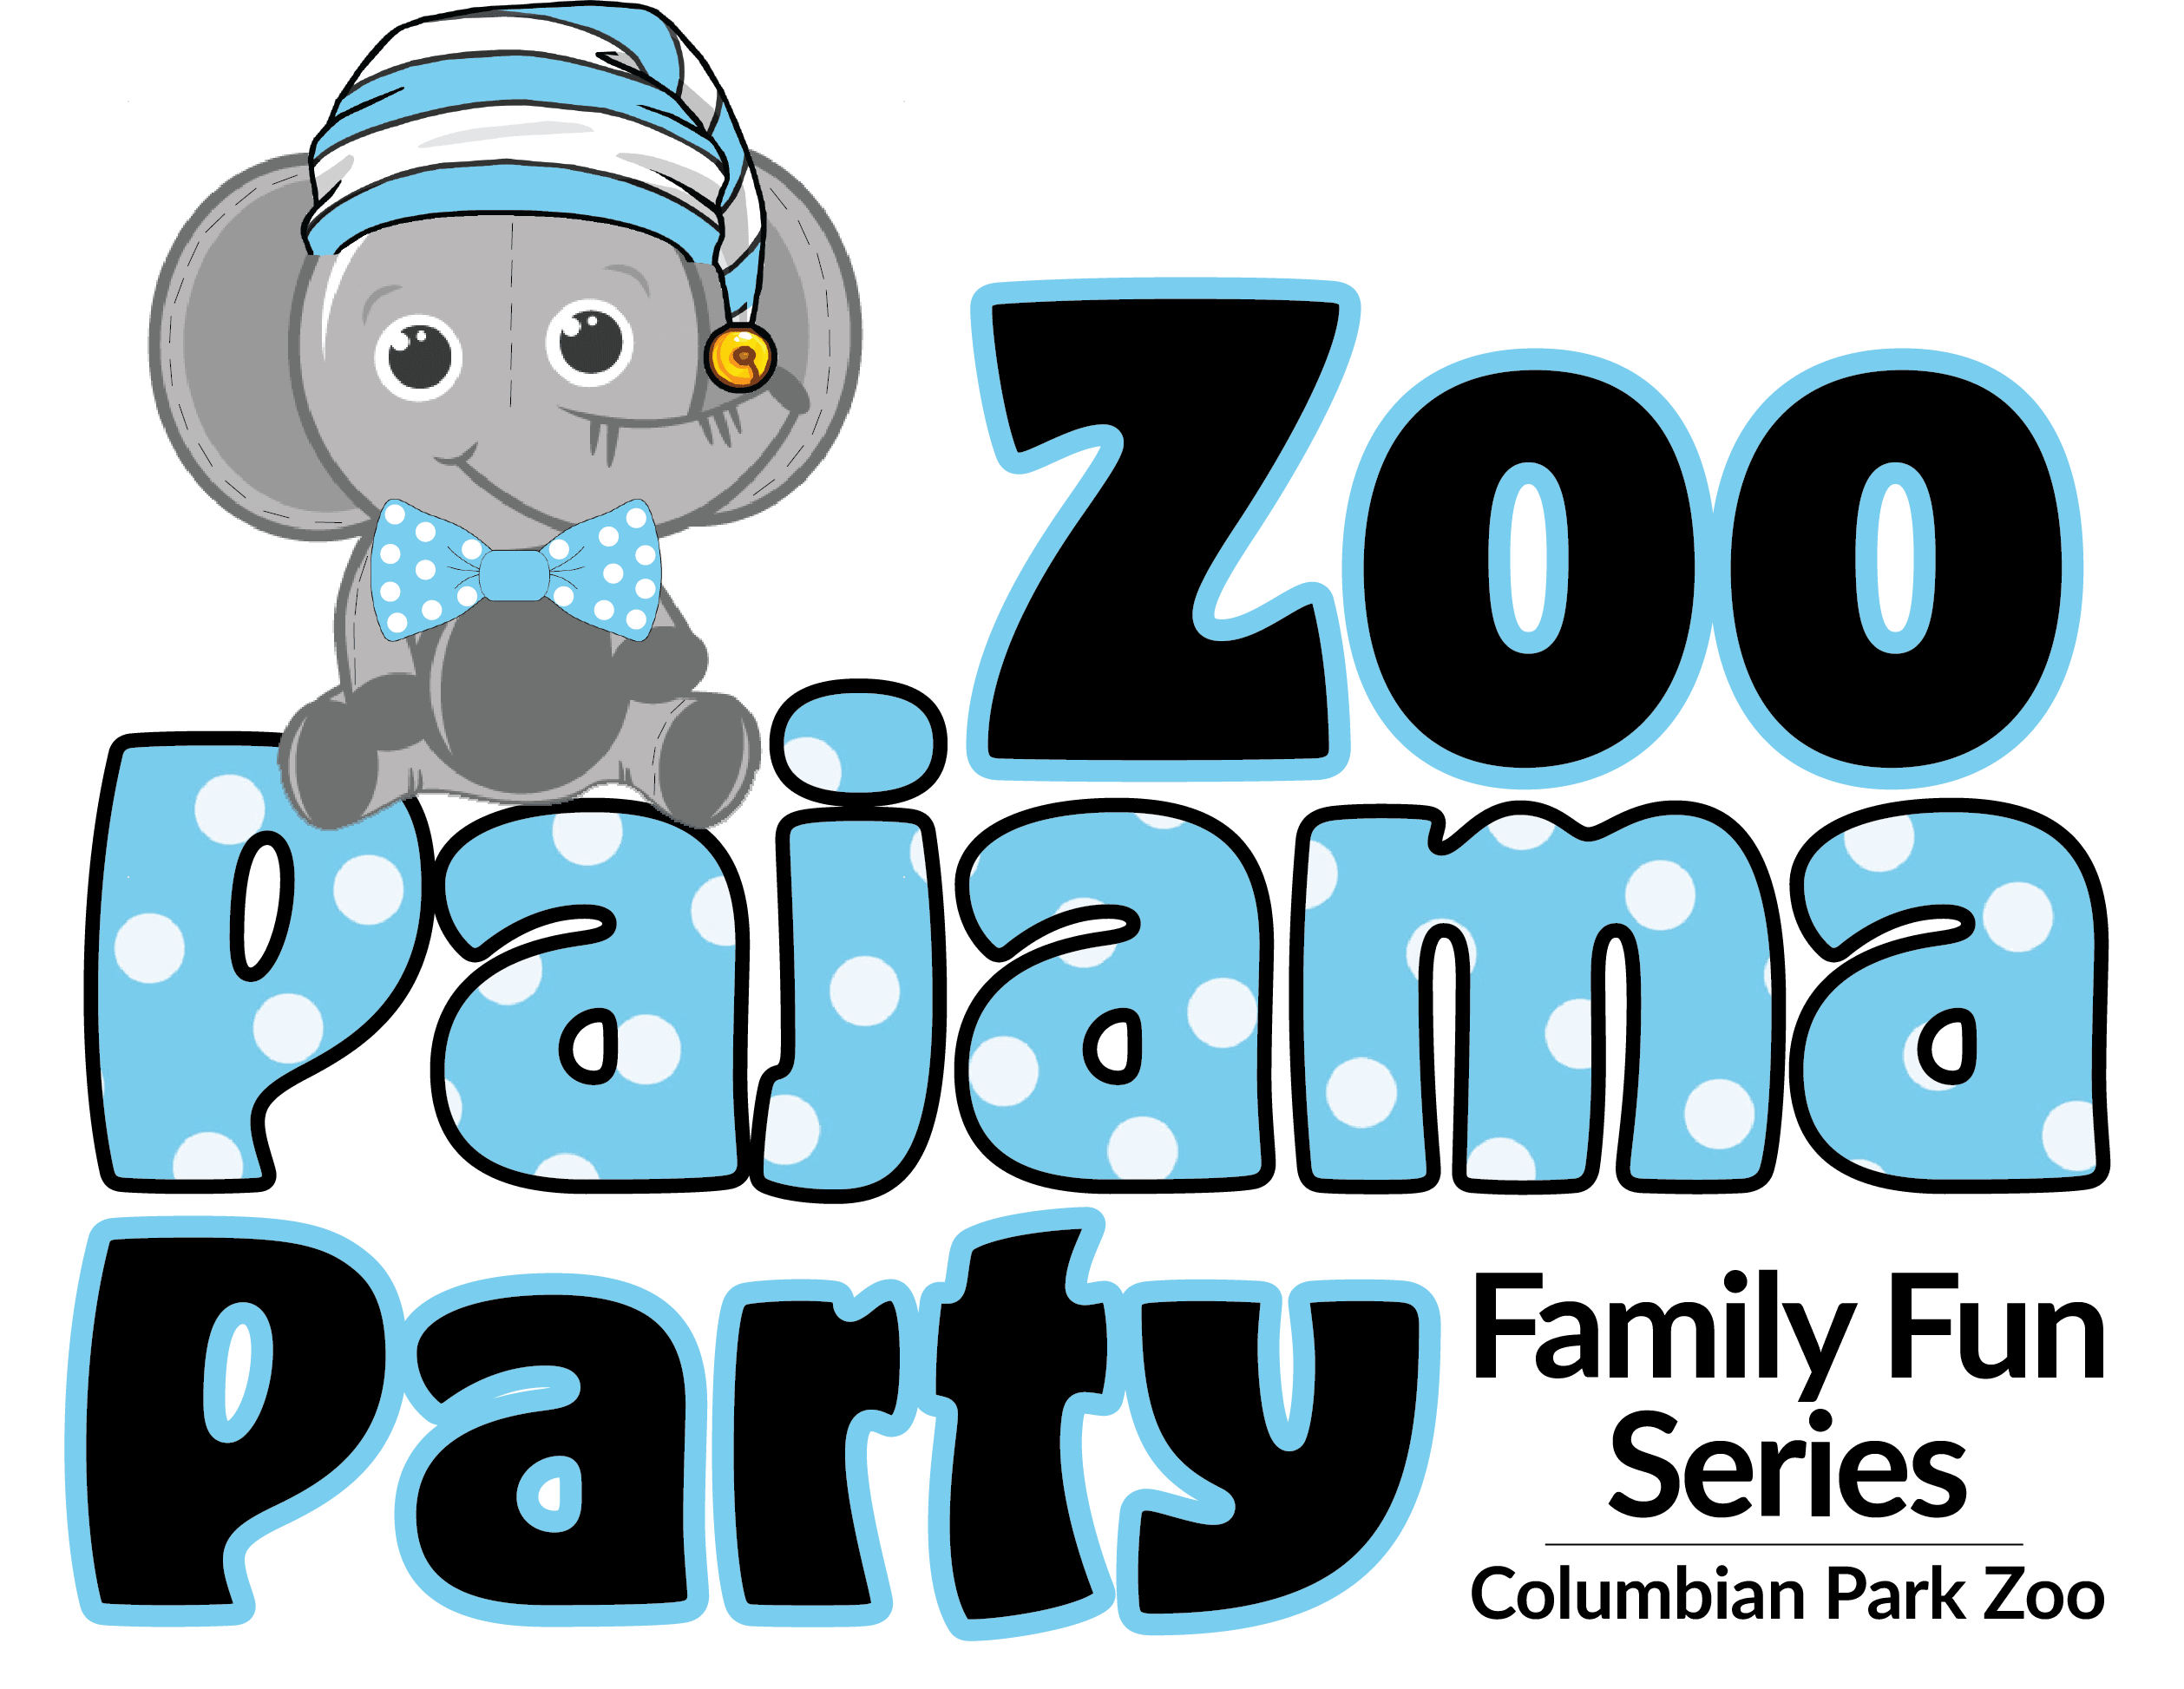 Christmas pajama party clipart picture library stock Zoo Pajama Party | Lafayette, IN - Official Website picture library stock